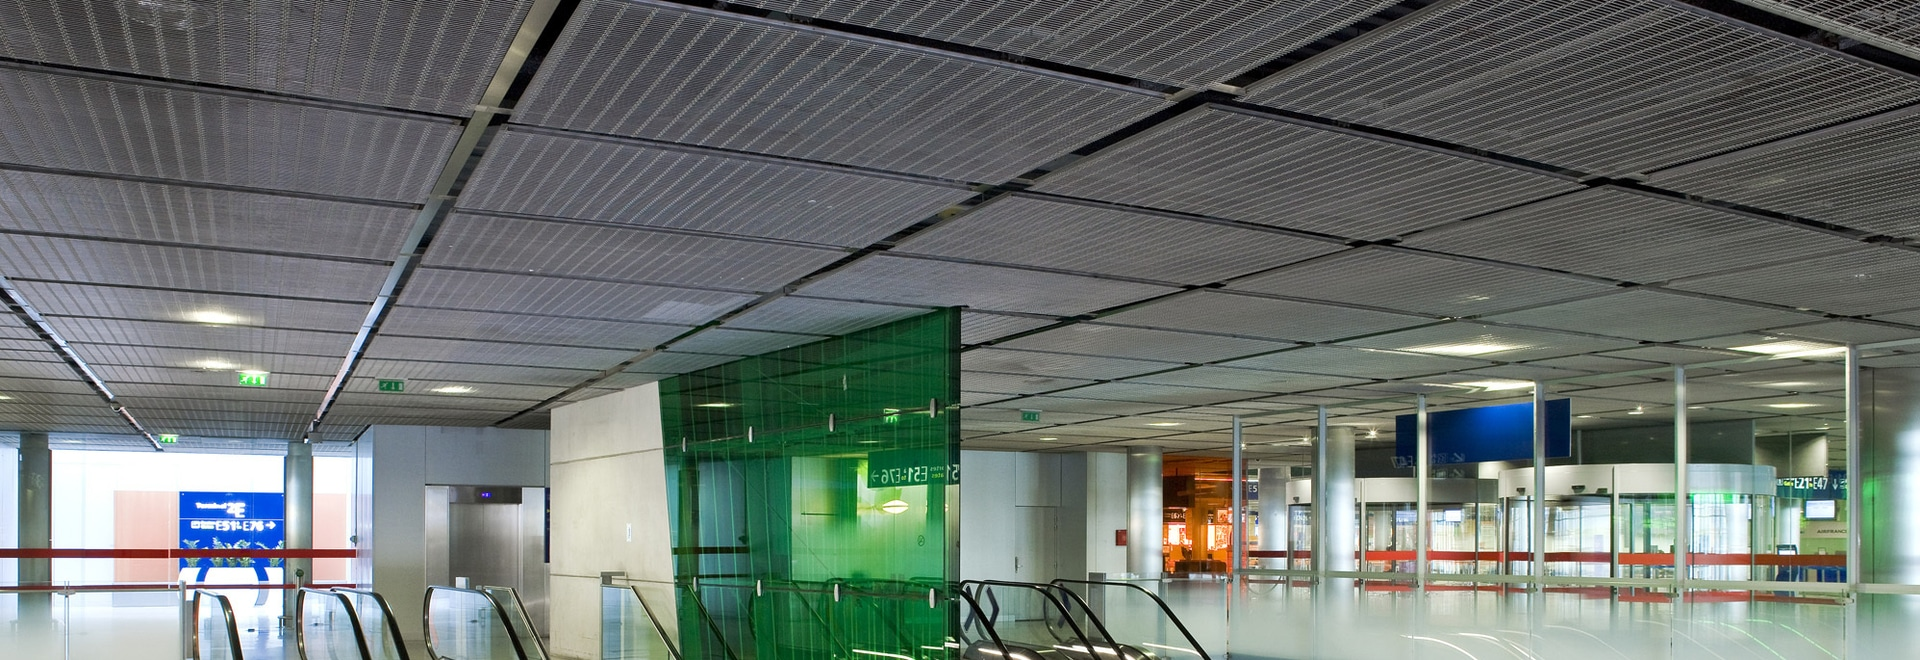 Design and function with wire mesh - Paris, France - HAVER & BOECKER OHG